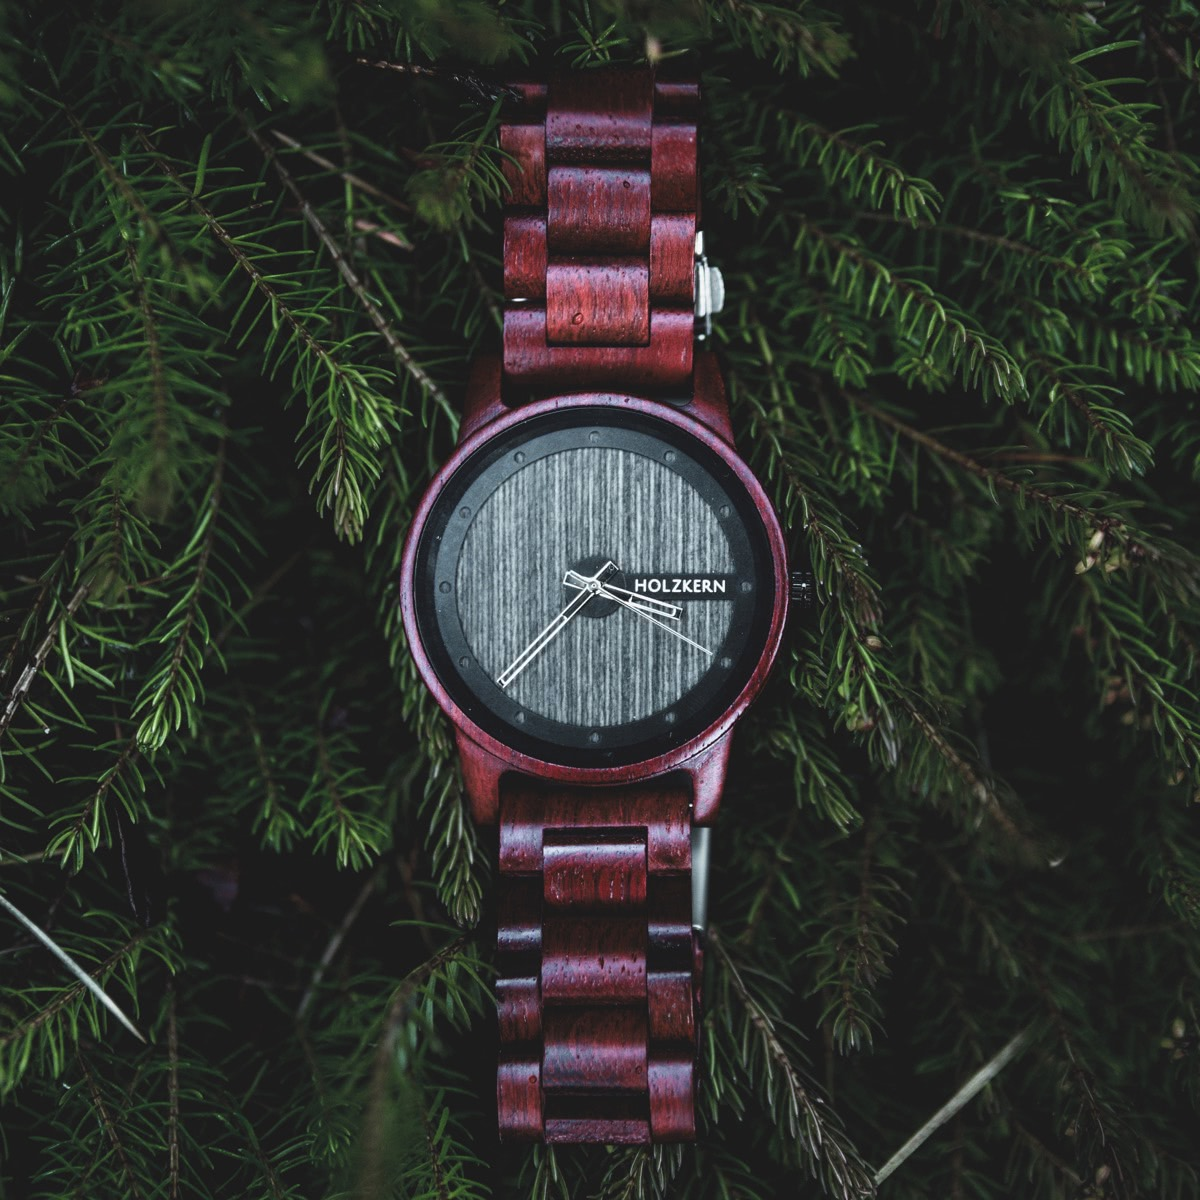 Wooden watch Matterhorn hanging on green conifer branches